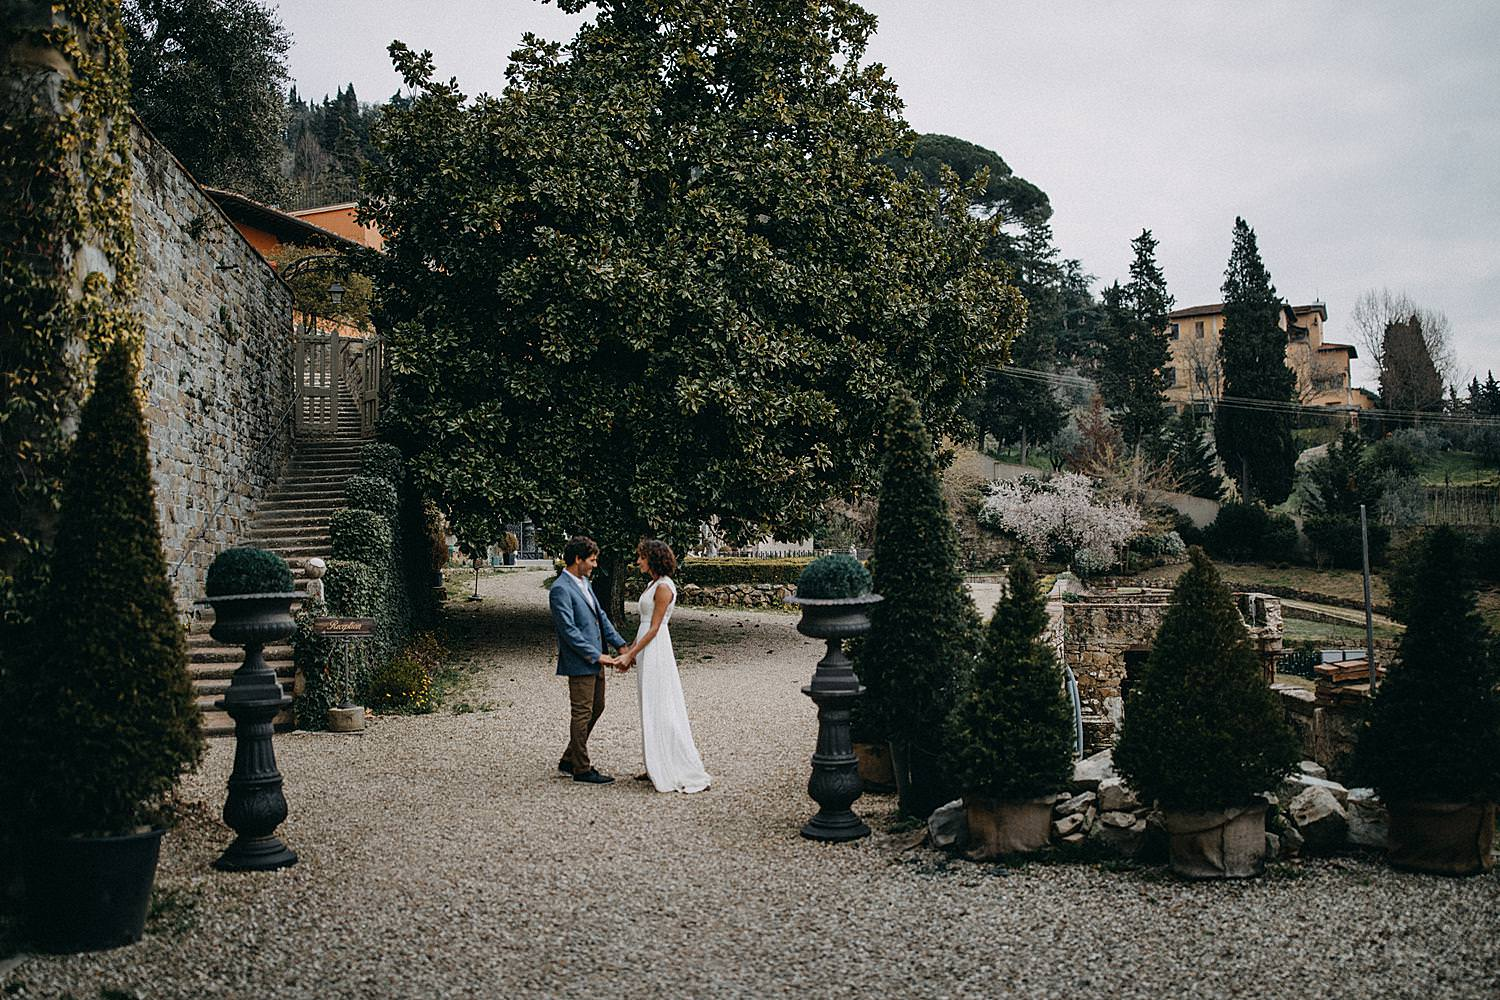 Toscany Villa wedding couple hand in hand